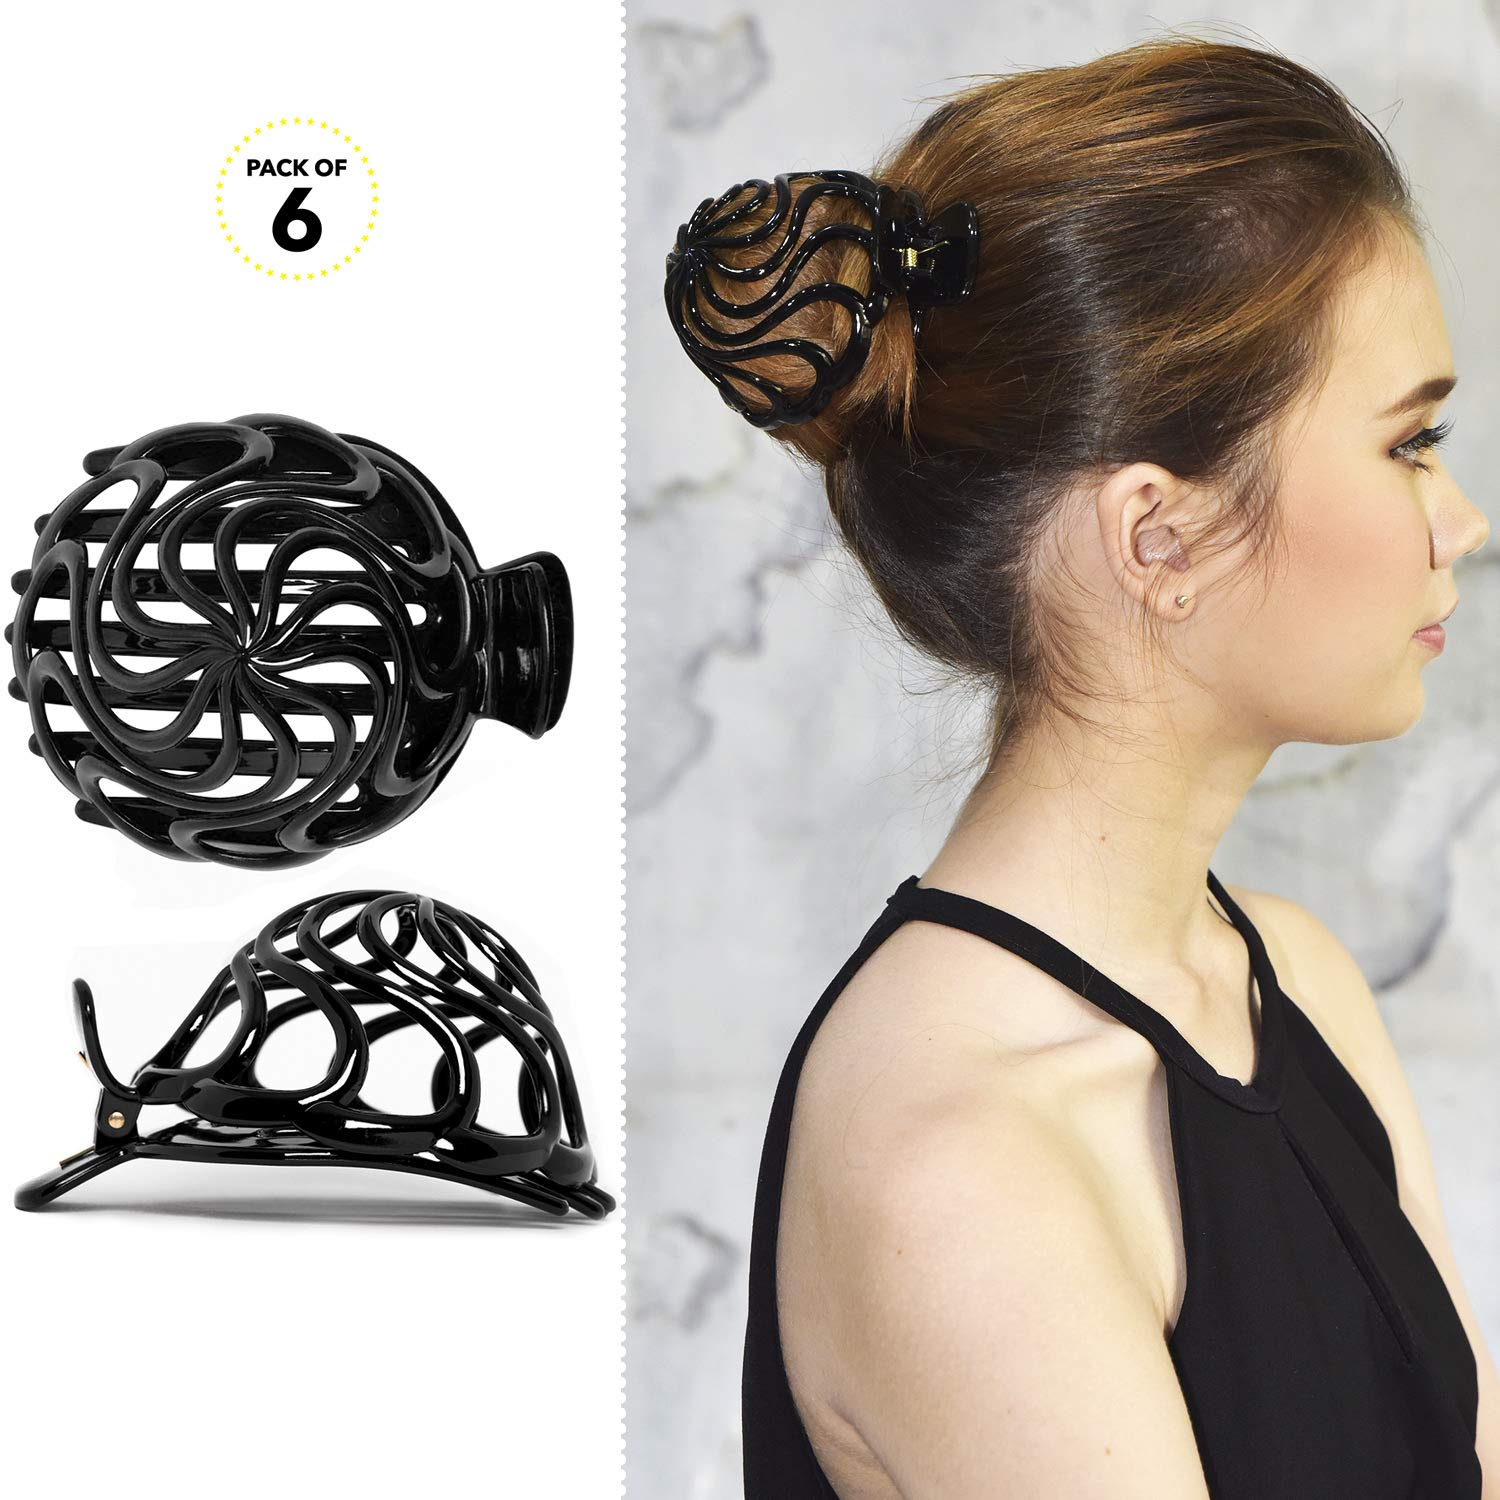 RC ROCHE ORNAMENT 6 Pcs Womens Shell Dome Round Circle Stylish Plastic Strong Grip Hinge Side Slide Bun Maker Clips Girls Beauty Accessory Hair Clip, Large Black